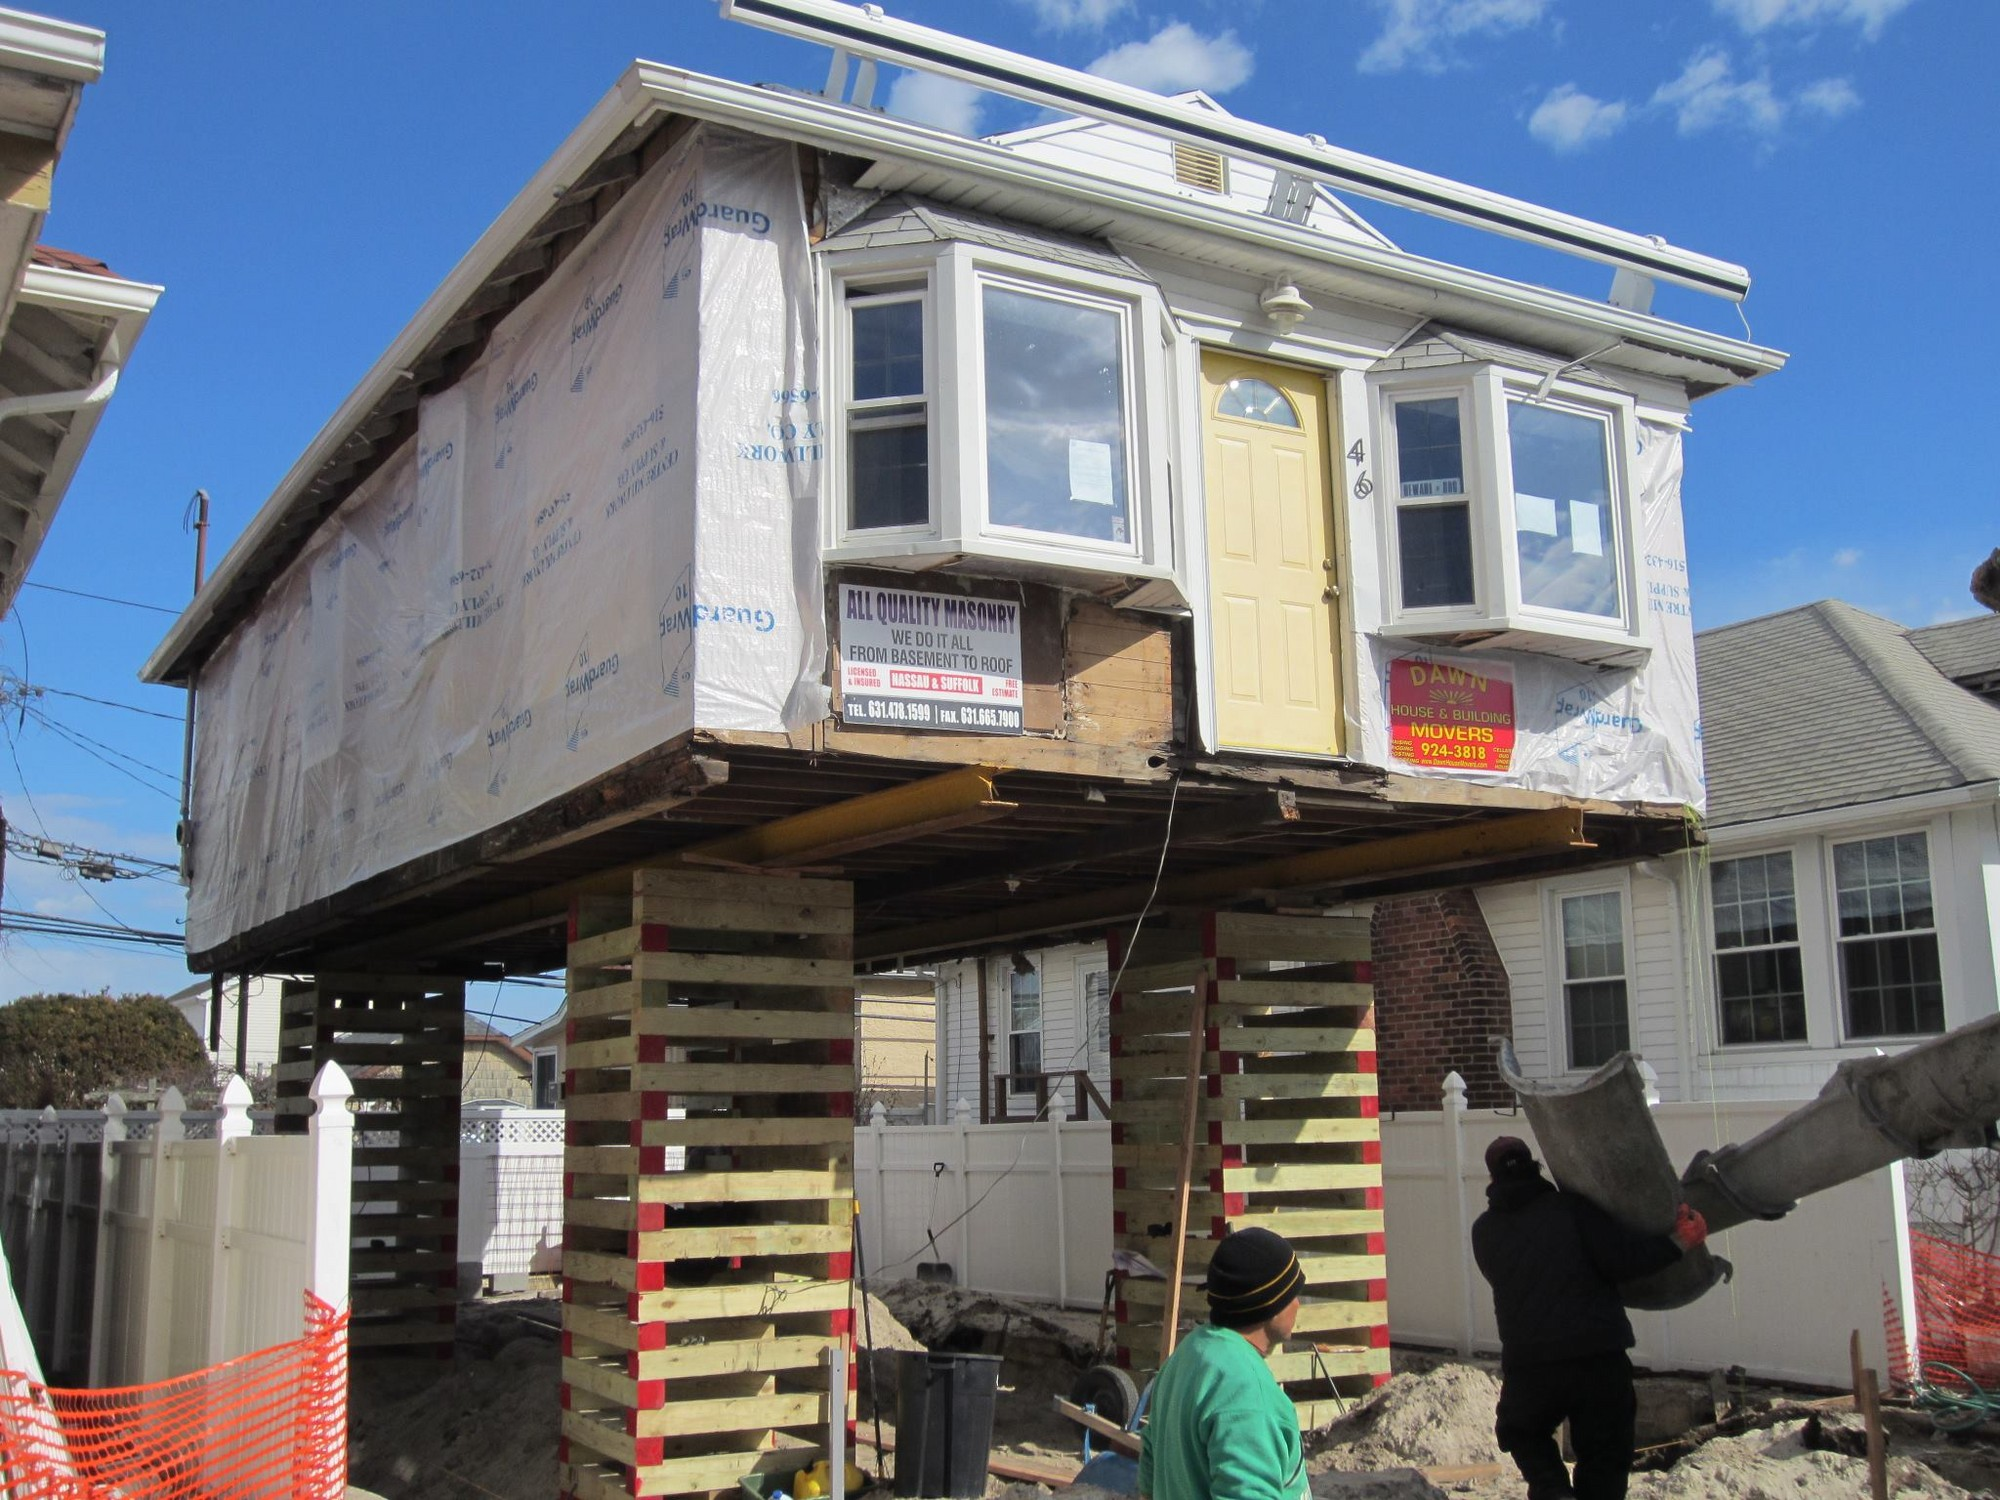 The city said about 865 homes in Long Beach need to be either elevated or completely rebuilt.